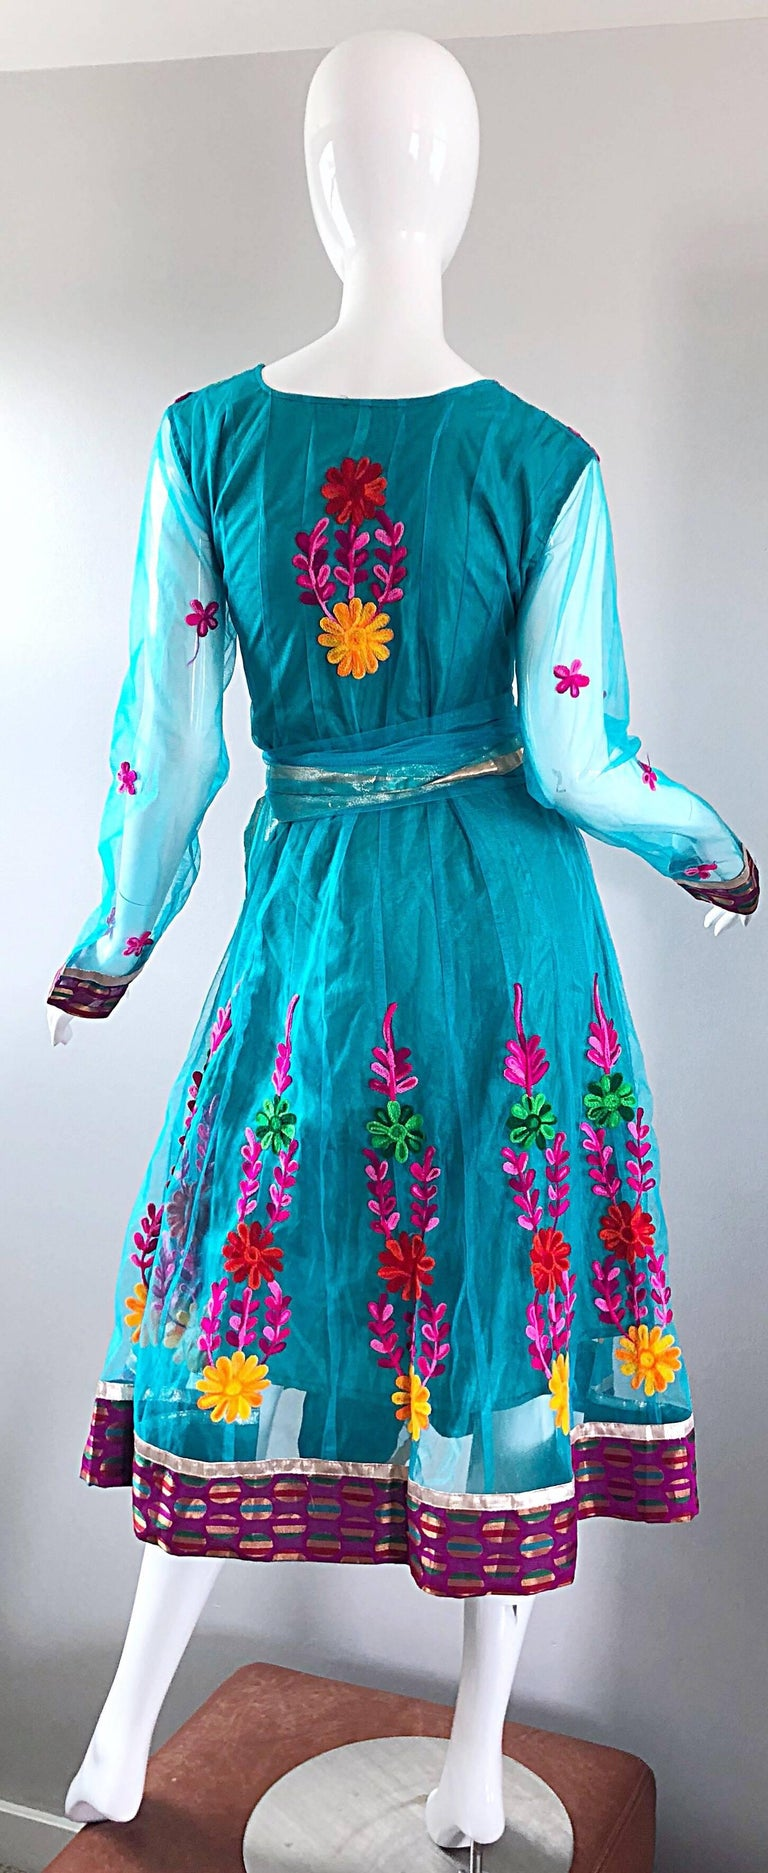 Women's Gorgeous 1970s Turquoise Blue Embroidered Vintage Indian Kurta 70s Dress + Sash For Sale